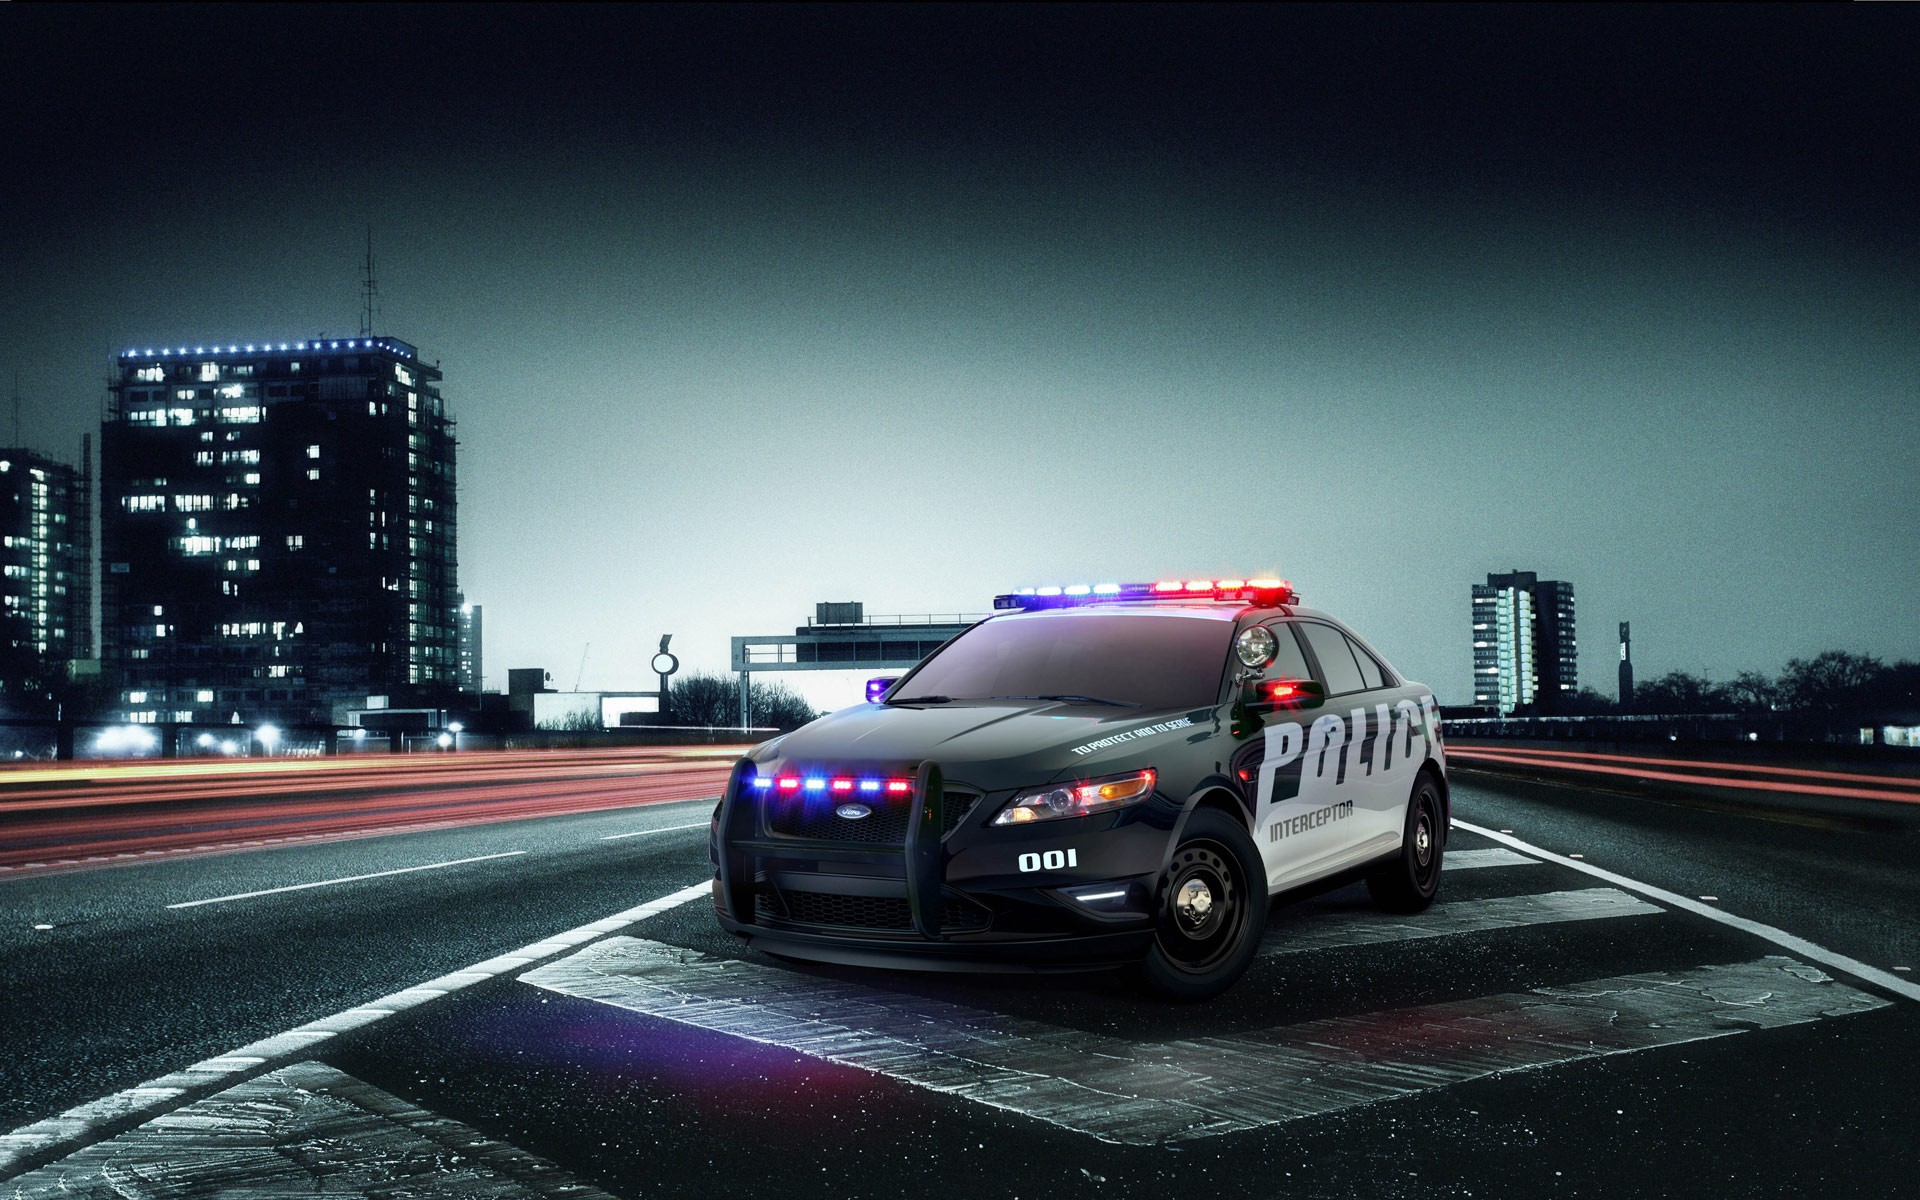 ford interceptor police дорога